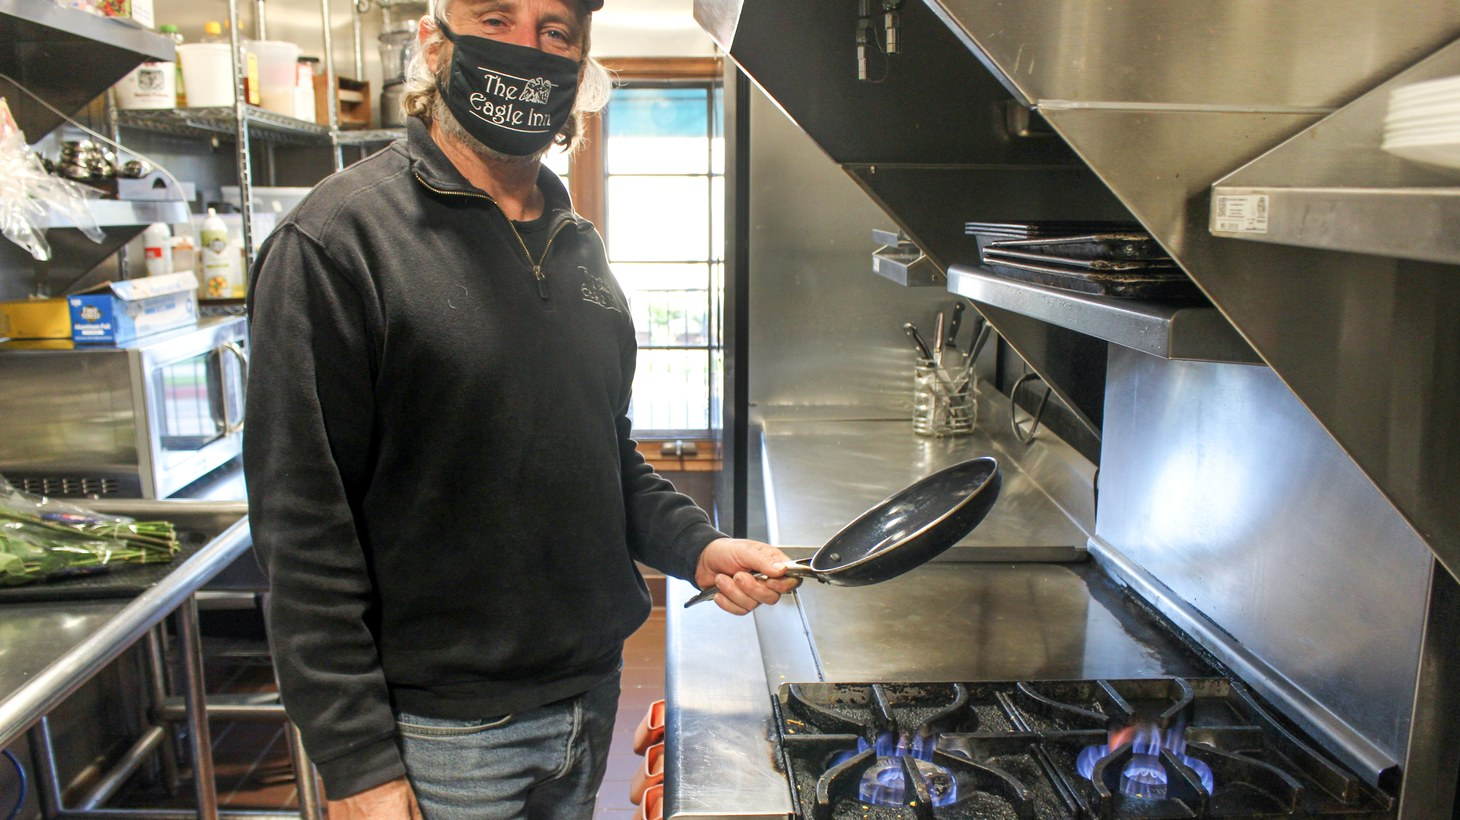 Paul Bullock owns the Eagle Inn, where he and his staff cook breakfast for roughly 60 guests when fully booked. He doesn't want Santa Barbara City Council to ban natural gas lines in new construction.